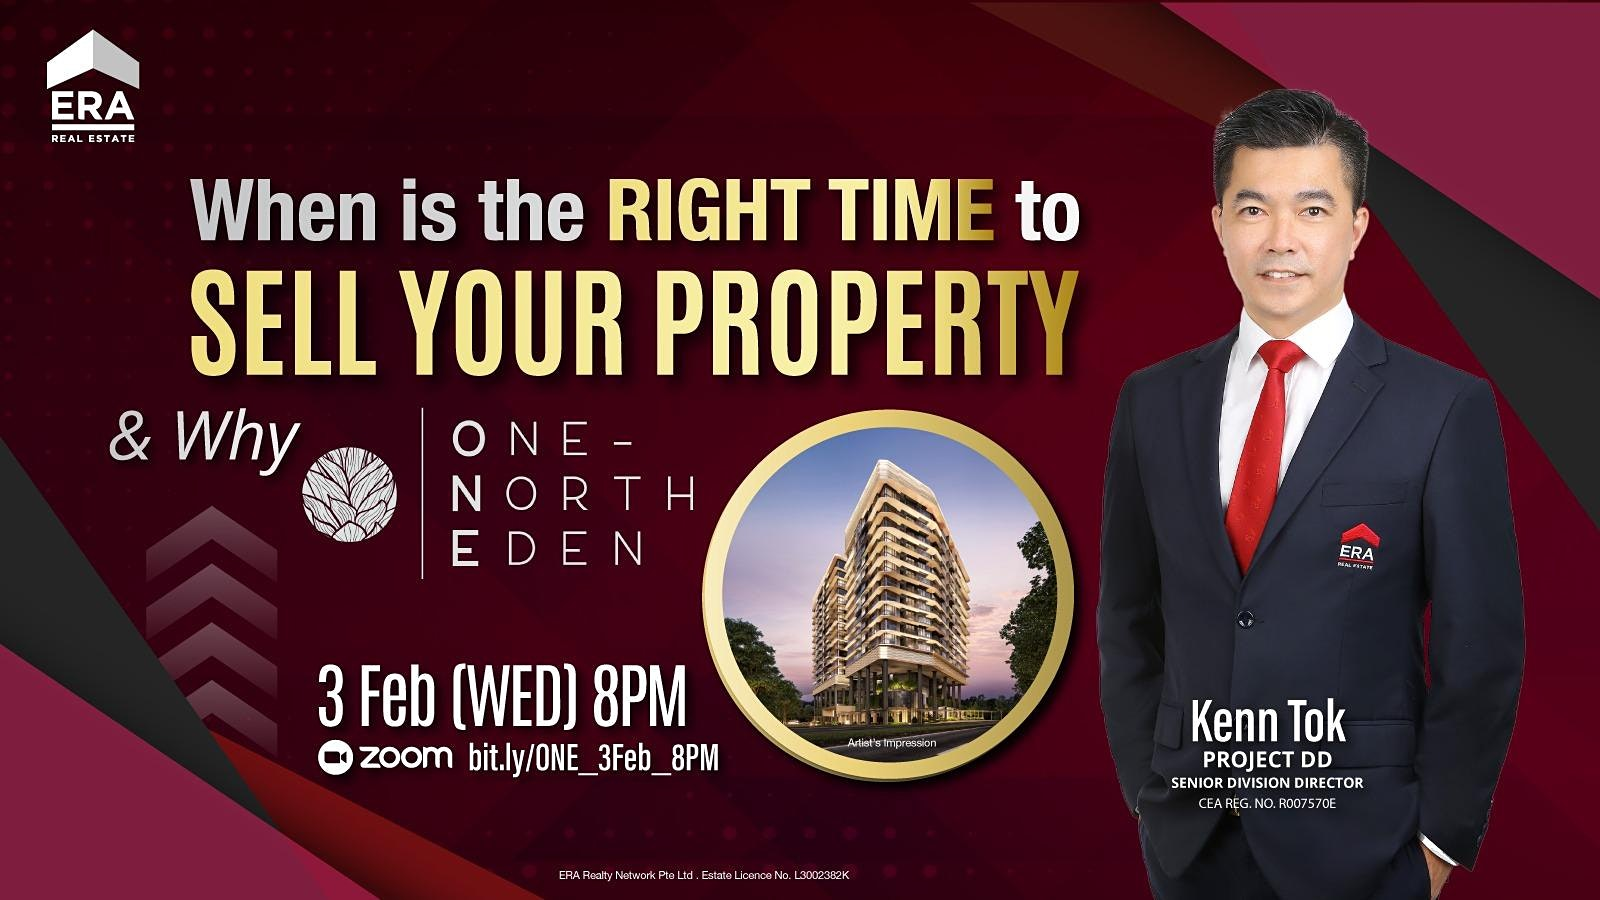 When Is the Right Time to Sell Your Property and Why One-North Eden